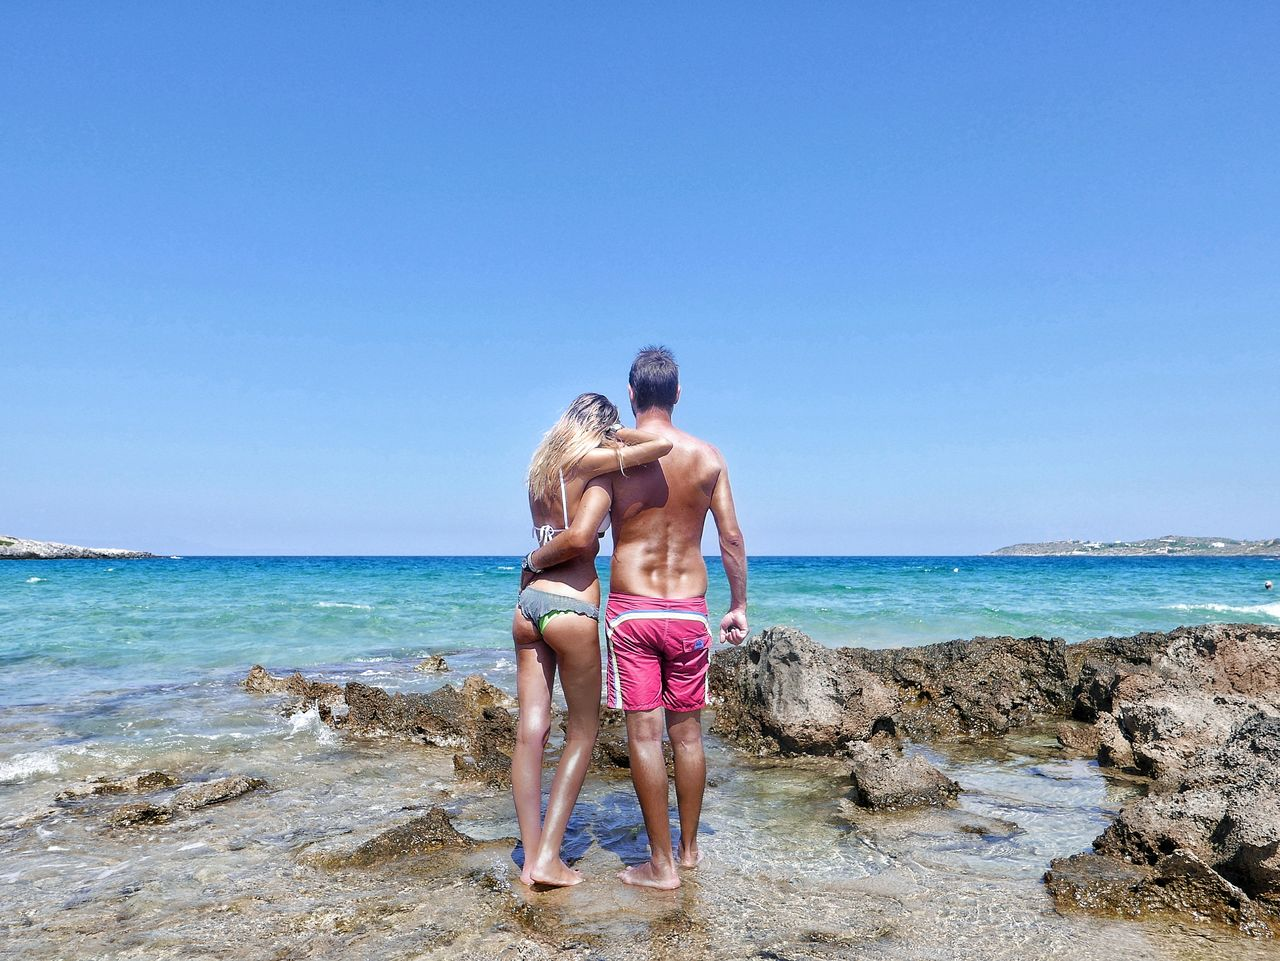 Rear view of couple standing on shore at beach against clear sky